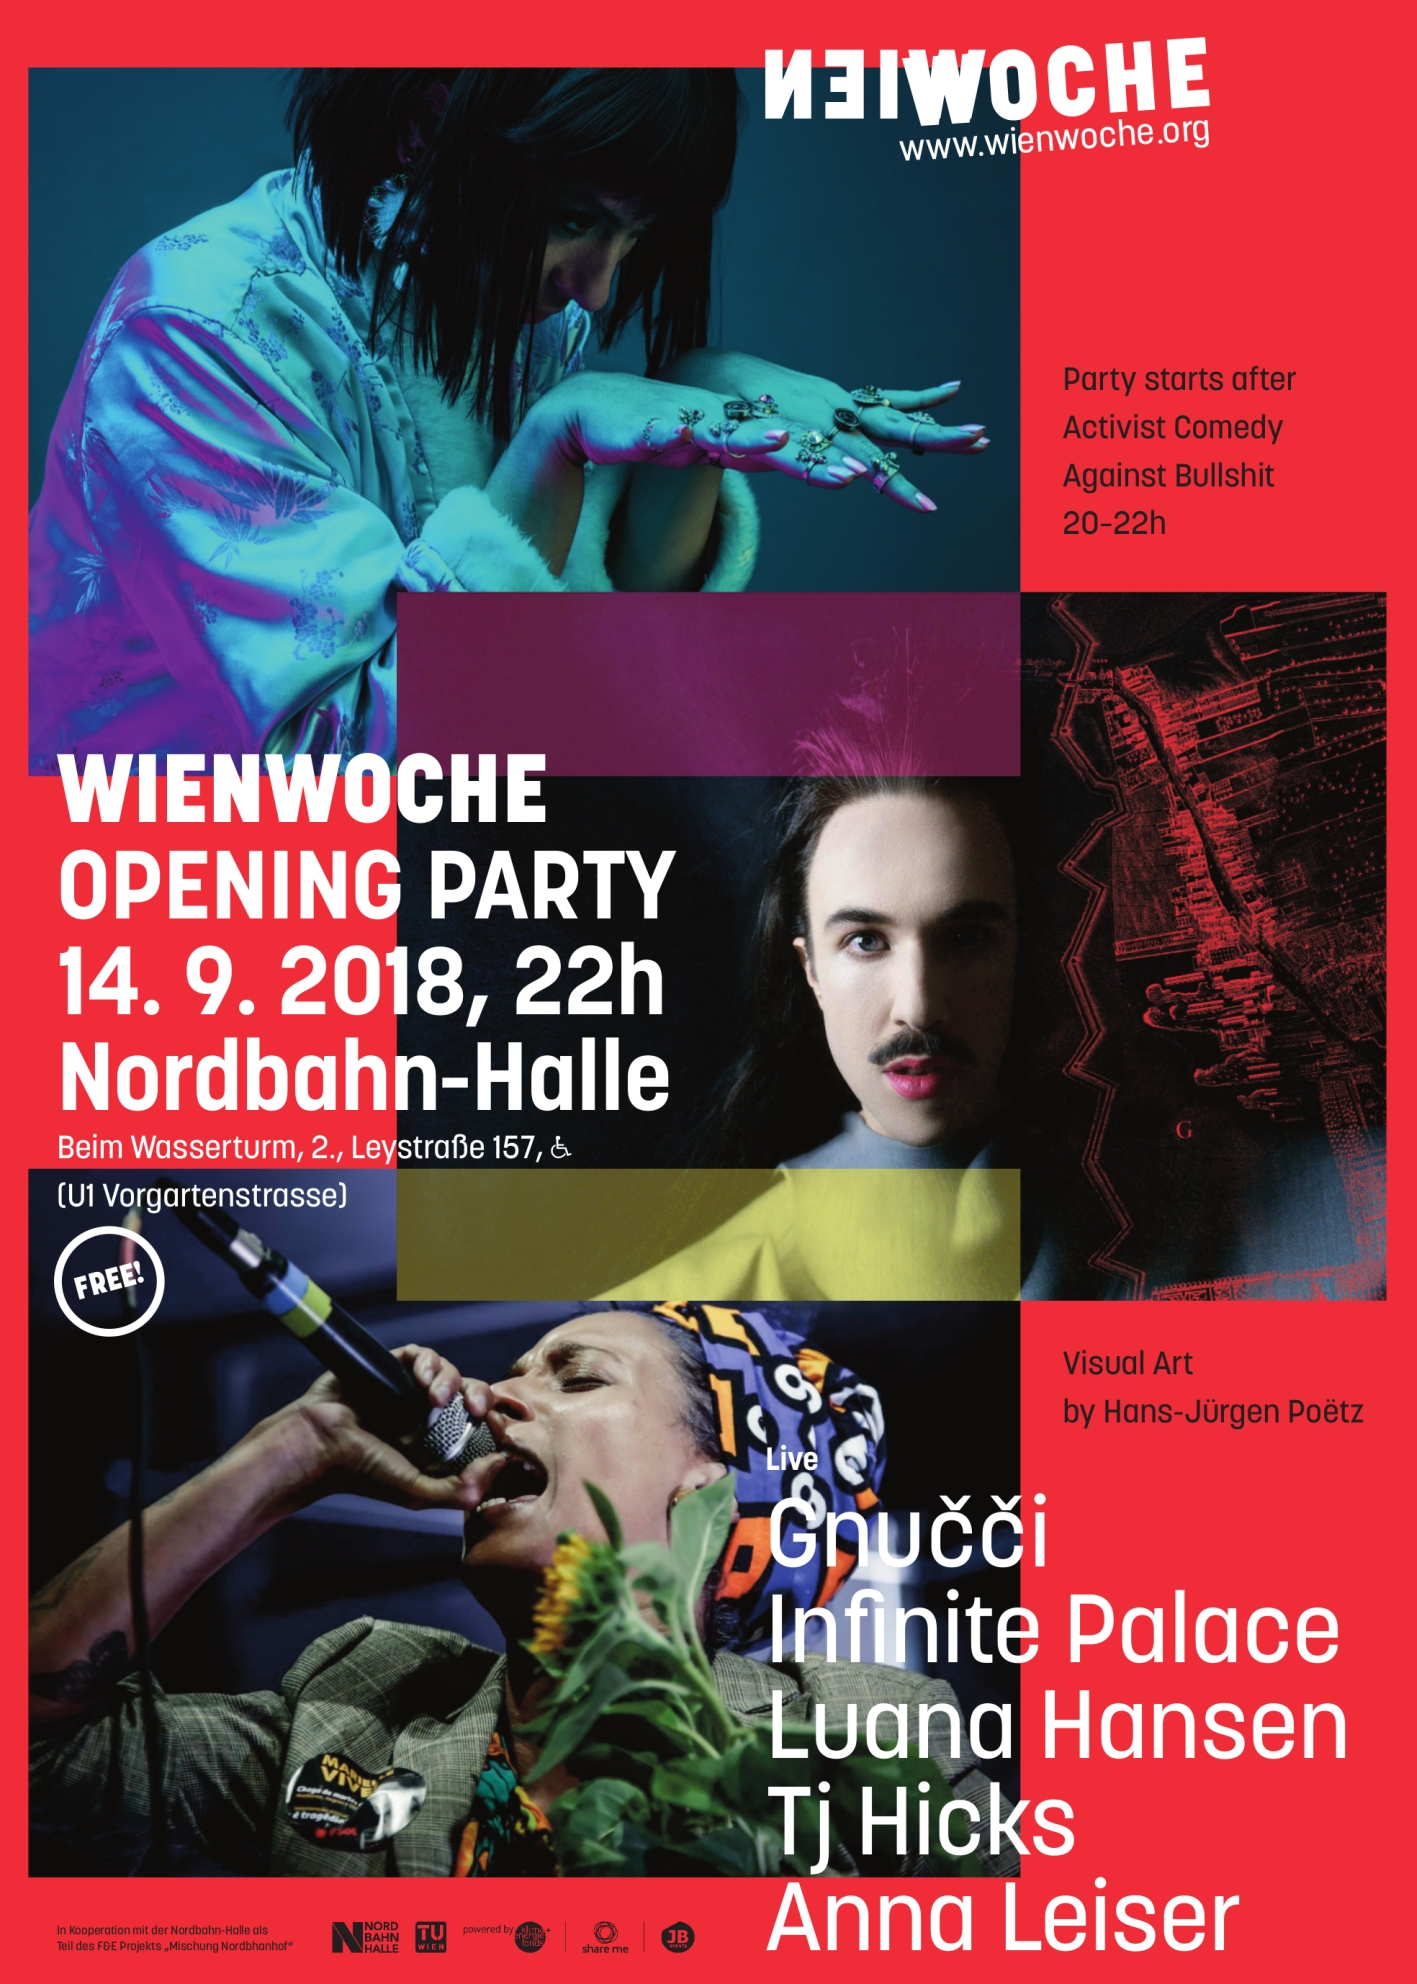 WIENWOCHE 2018 Opening Party Poster